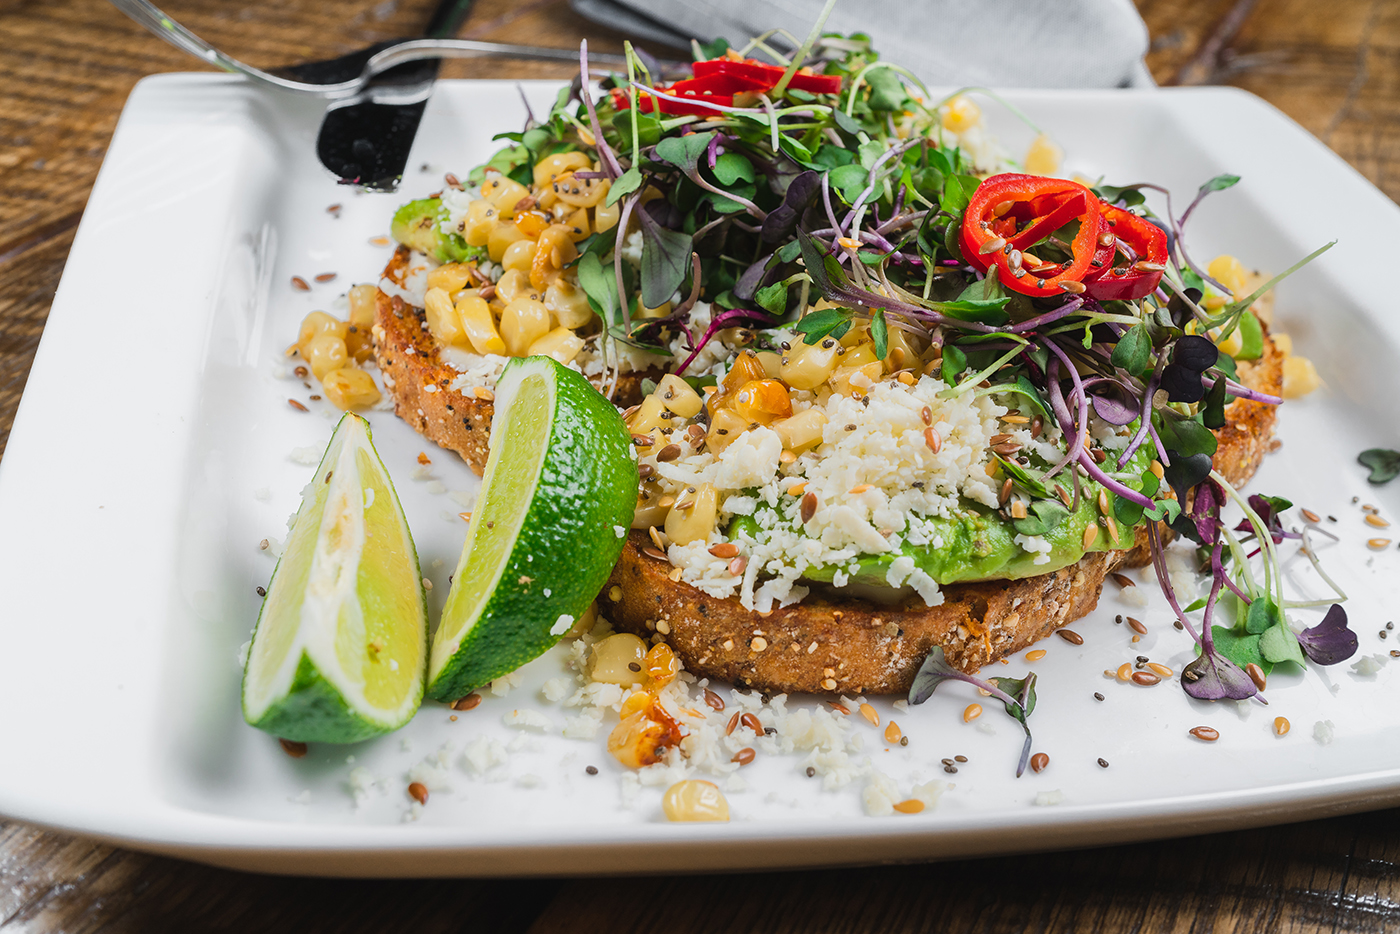 Not like any other avocado toast you've seen—the avocado toast at Beaumont Bakery tops theirs with hydroponic microgreens, cotija cheese and Fresno chiles.